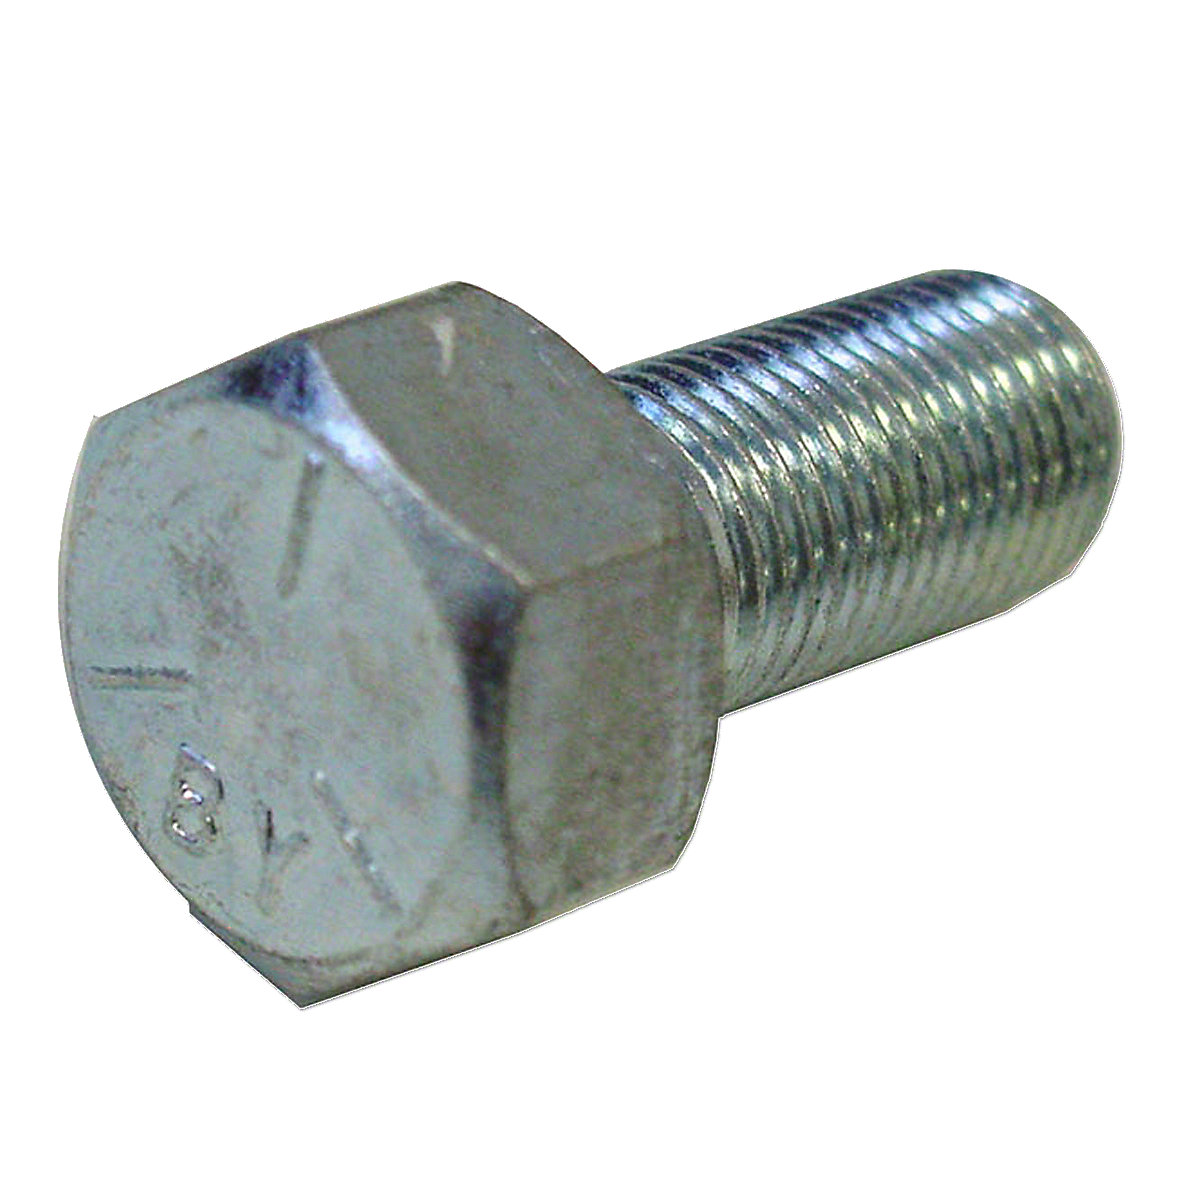 Front Wheel Lug Bolt For Allis Chalmers: 190XT, B, C, CA, D10, D12, D14, D15, D17, D19, D21, I40, I400, I60, RC, WC, WD, WD45, 160, 170, 175, 180, 185, 190, 200, 6060, 6070, 6080, 7000.